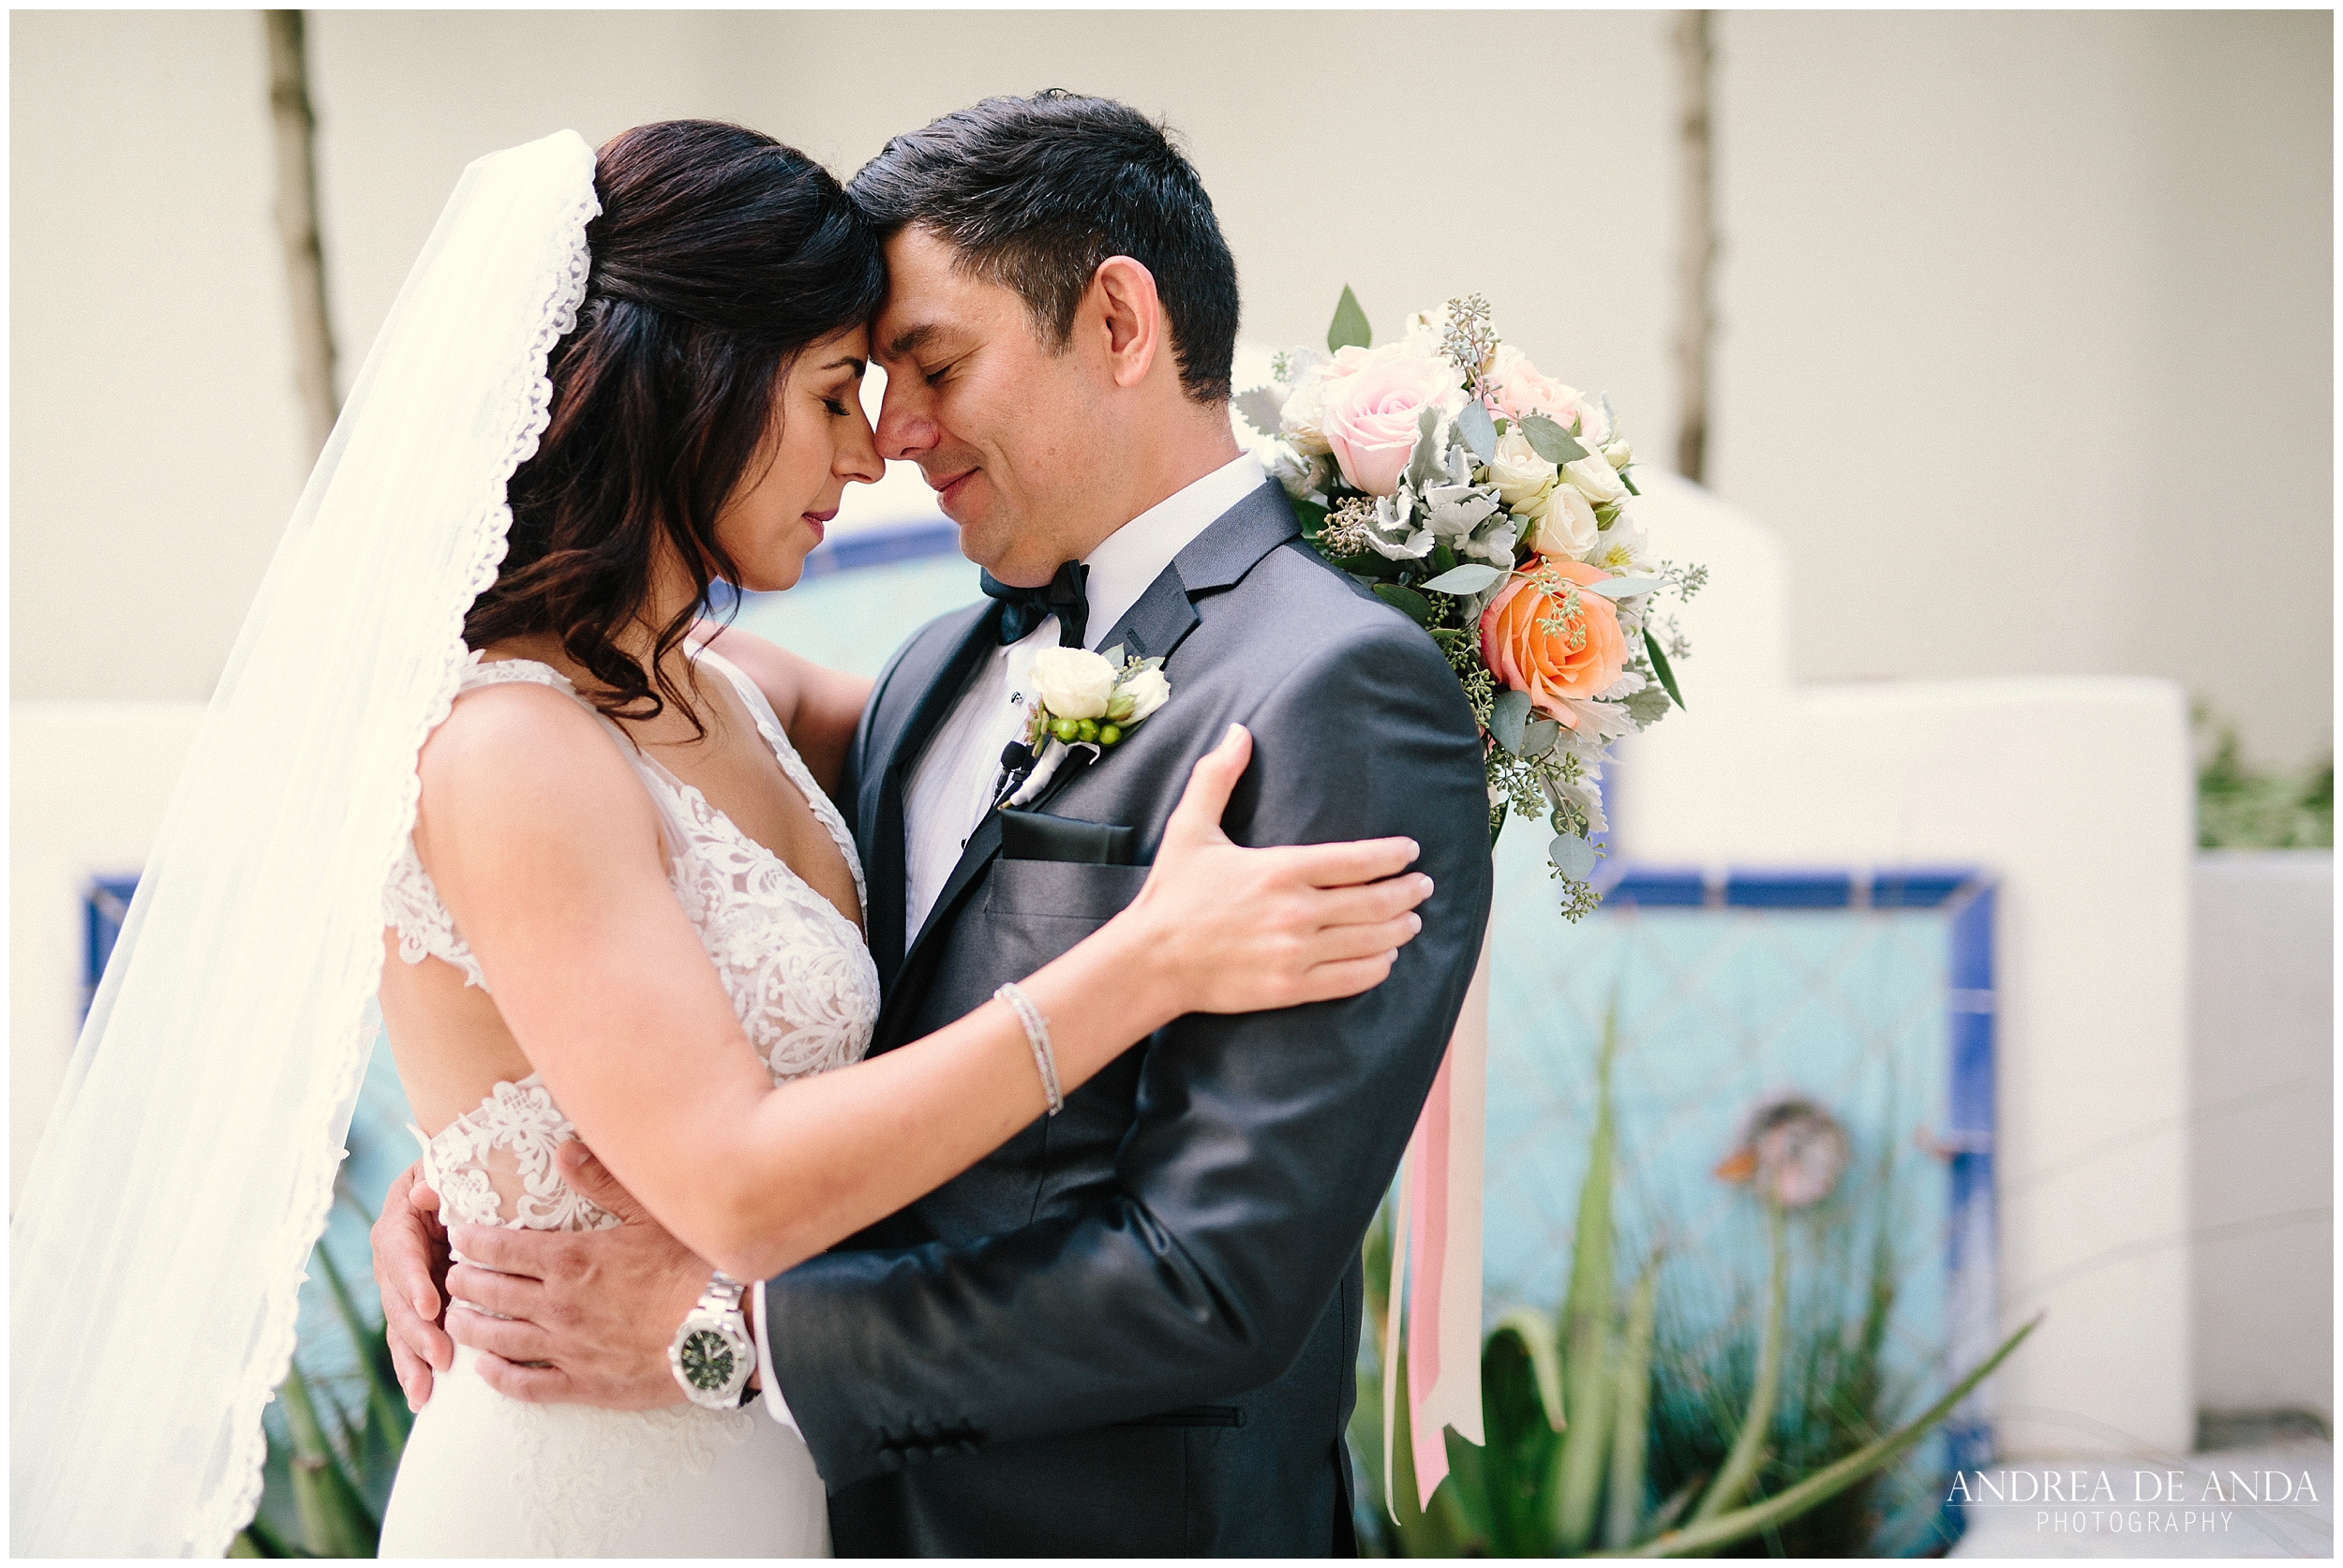 Bacara Santa Barbara Wedding by Andrea de Anda Photography__0010.jpg